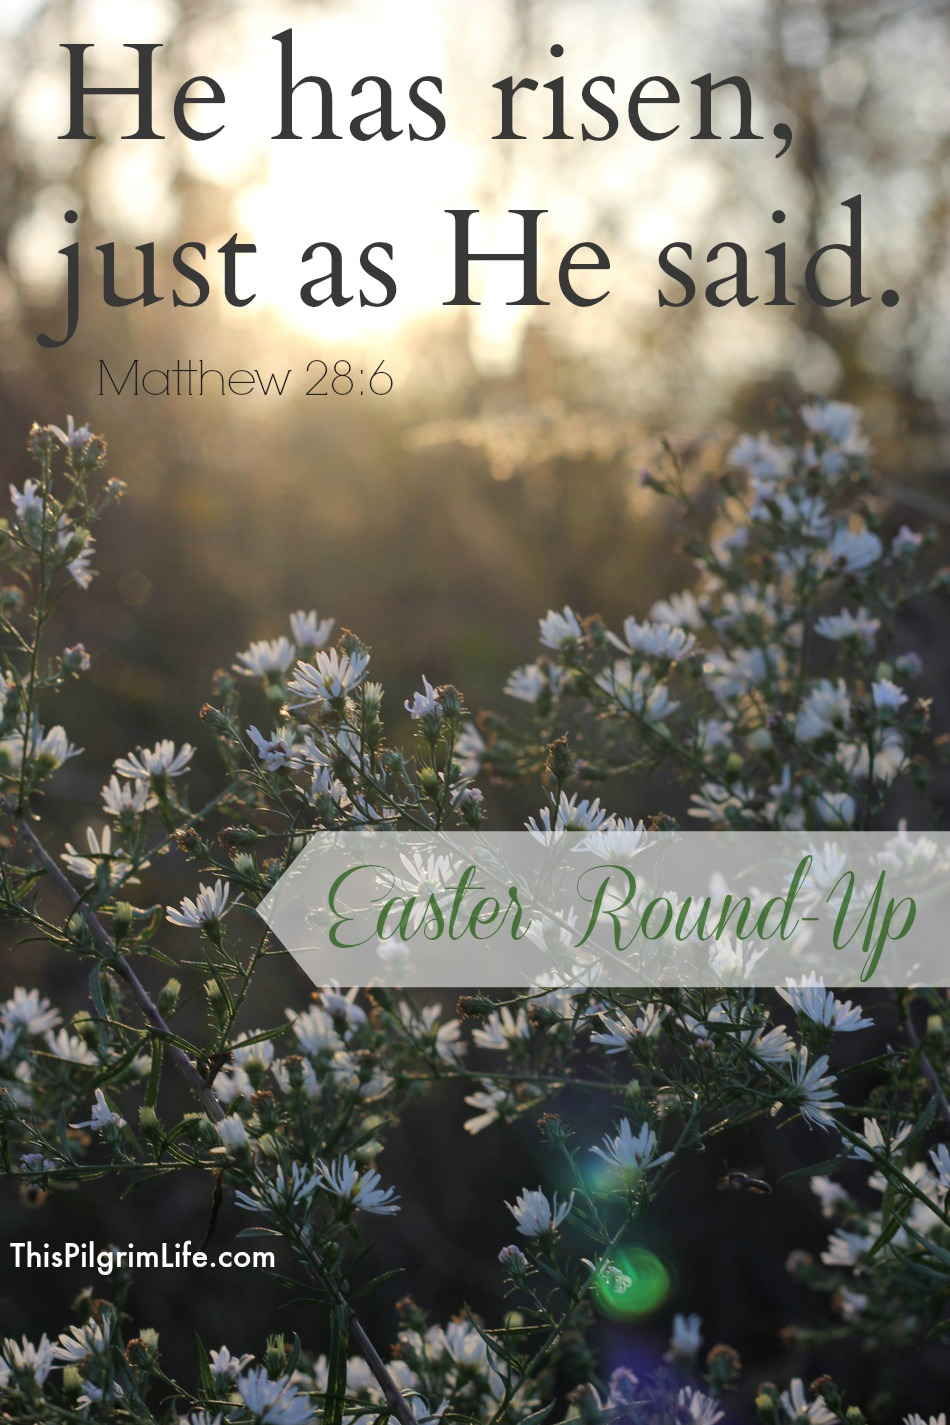 Easter Round-Up